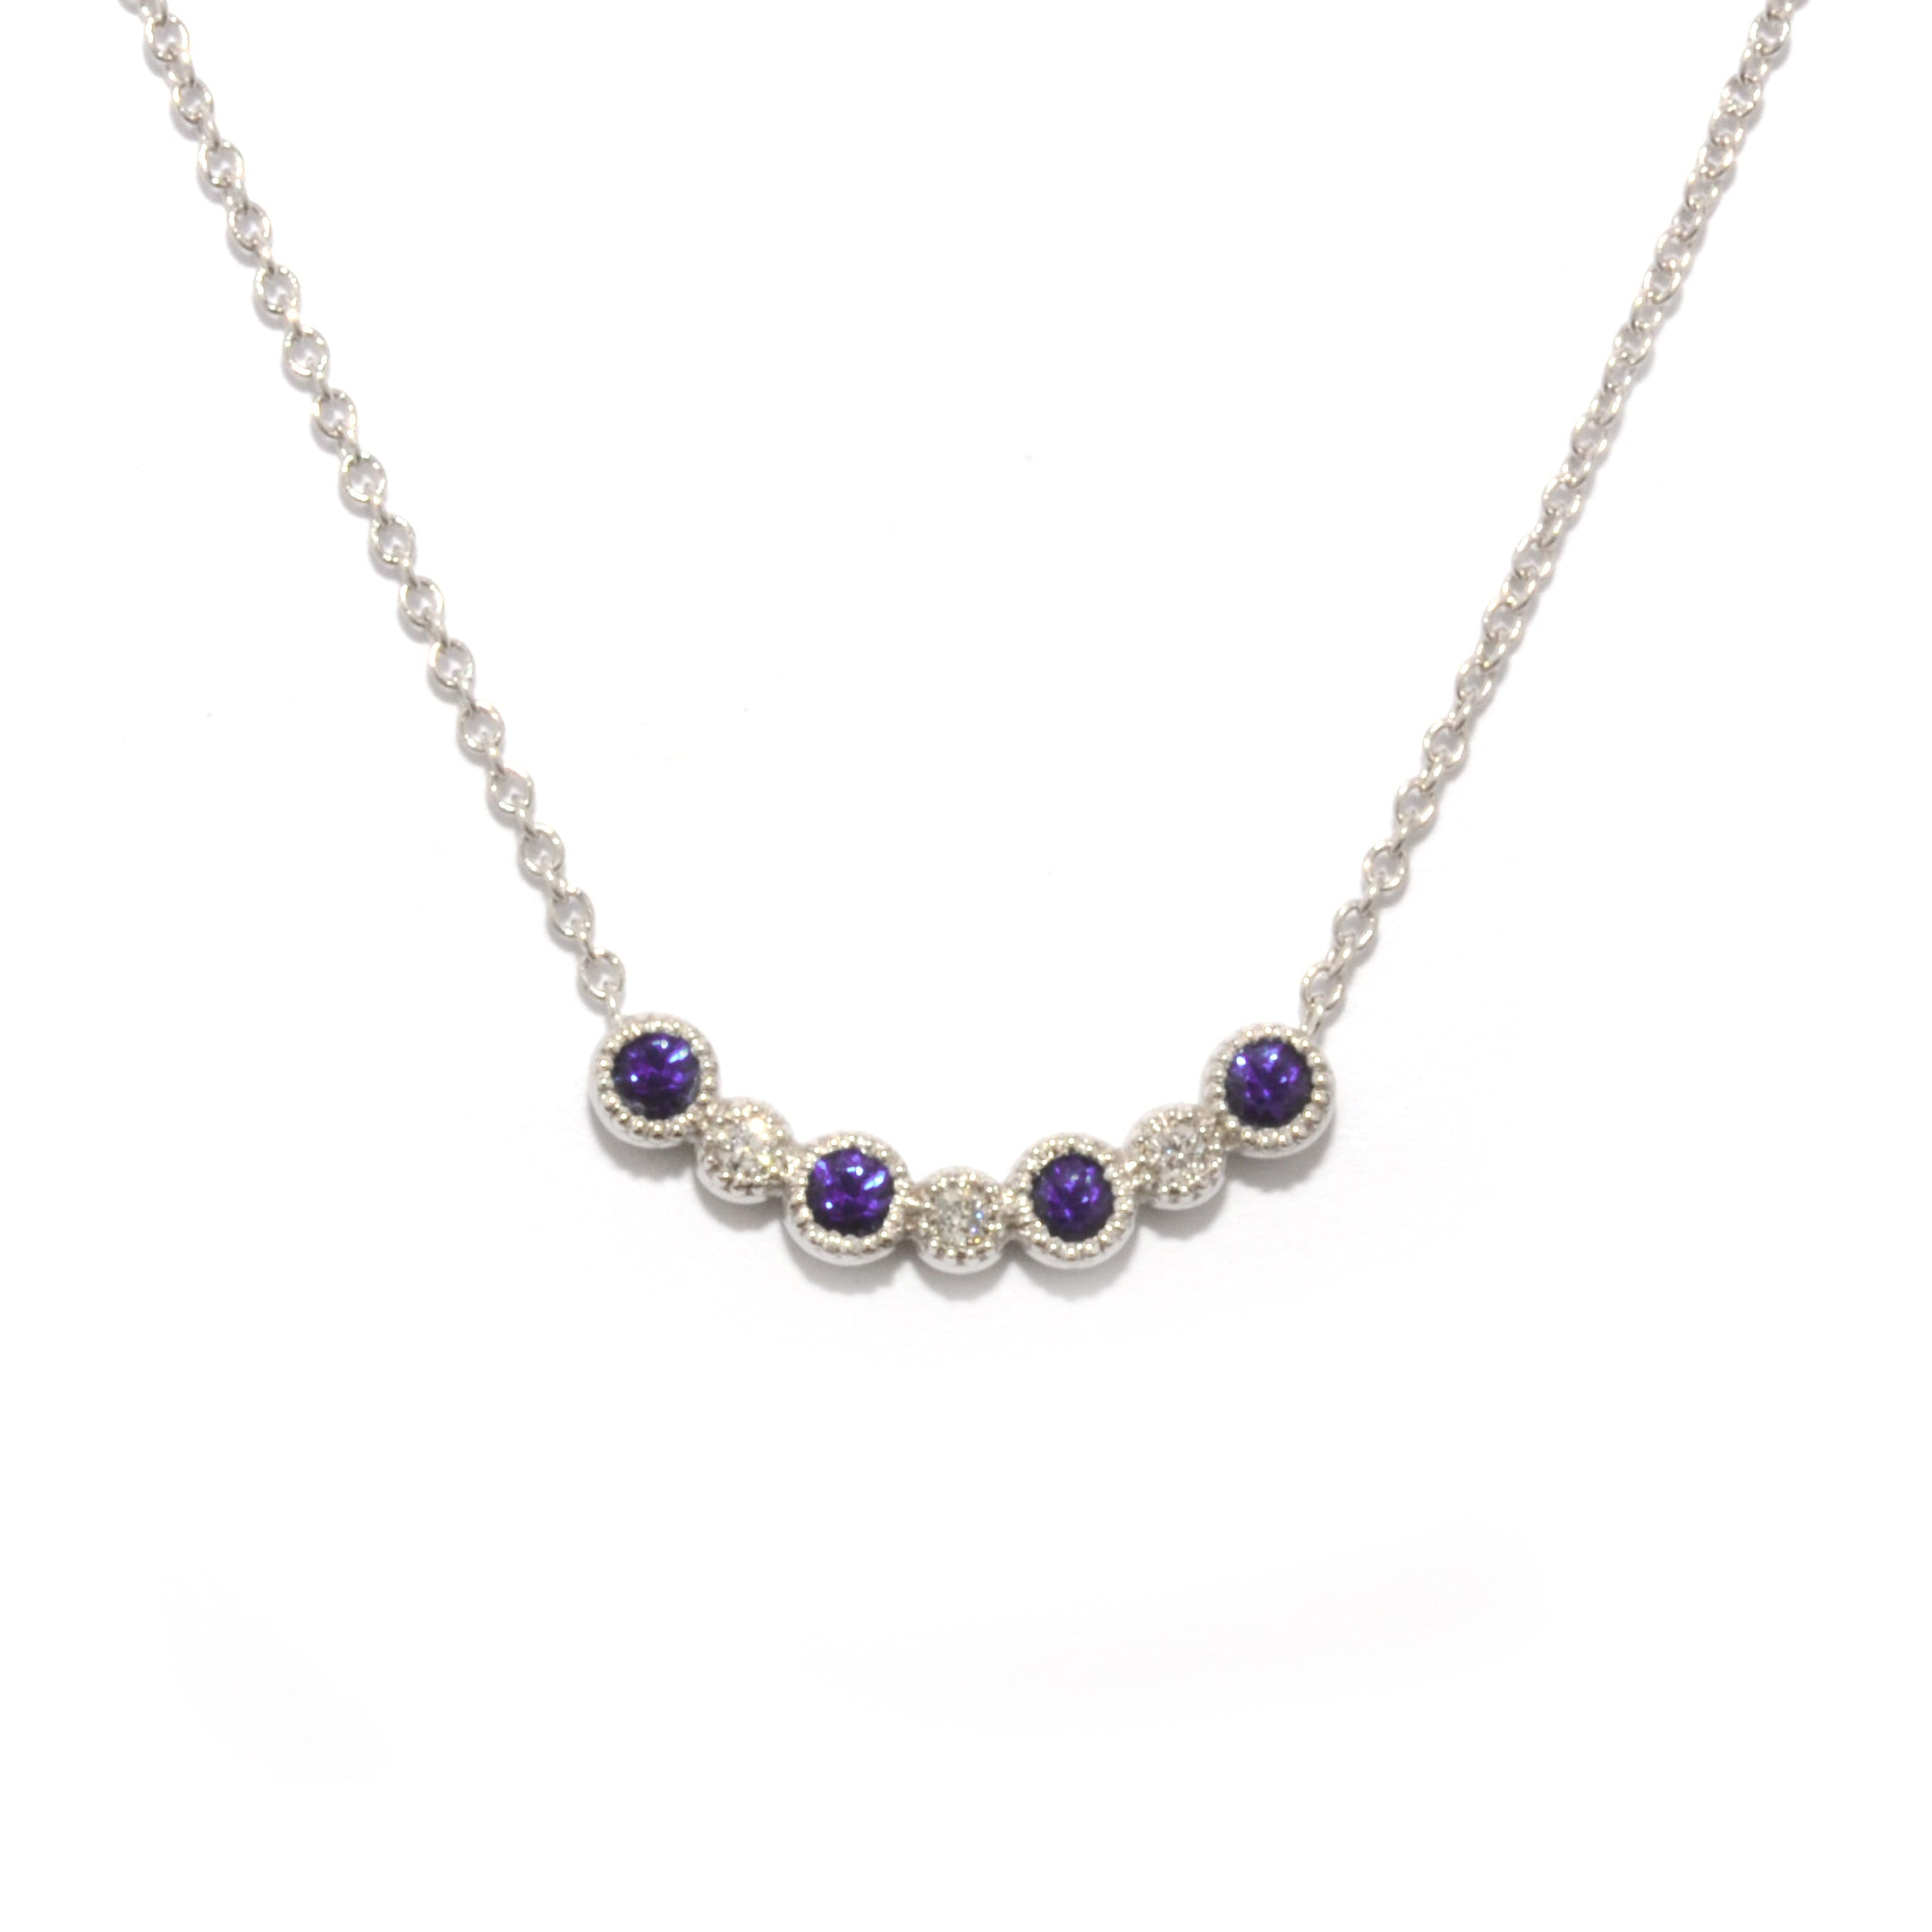 Curved bar with alternating amethyst and diamond rounds